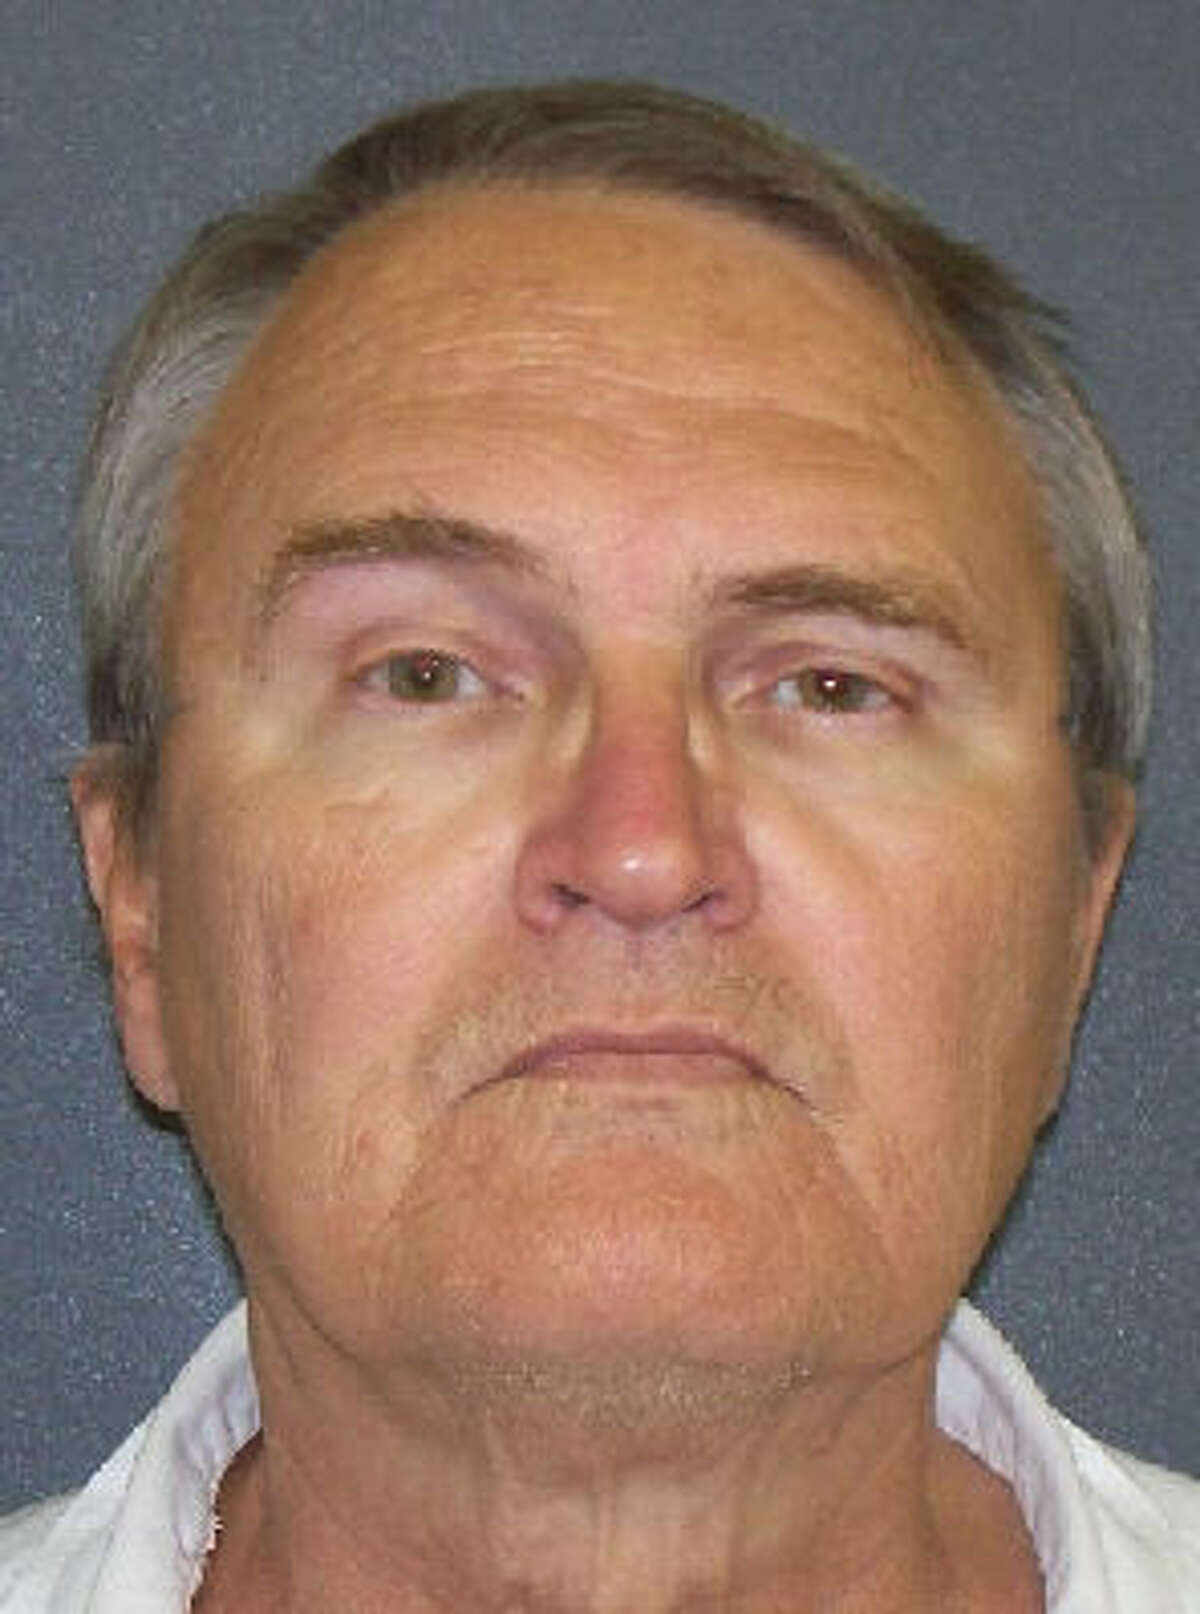 David Owen Brooks was one of Dean Corll's accomplices in what became known as the Houston Mass Murders of 1970-73.